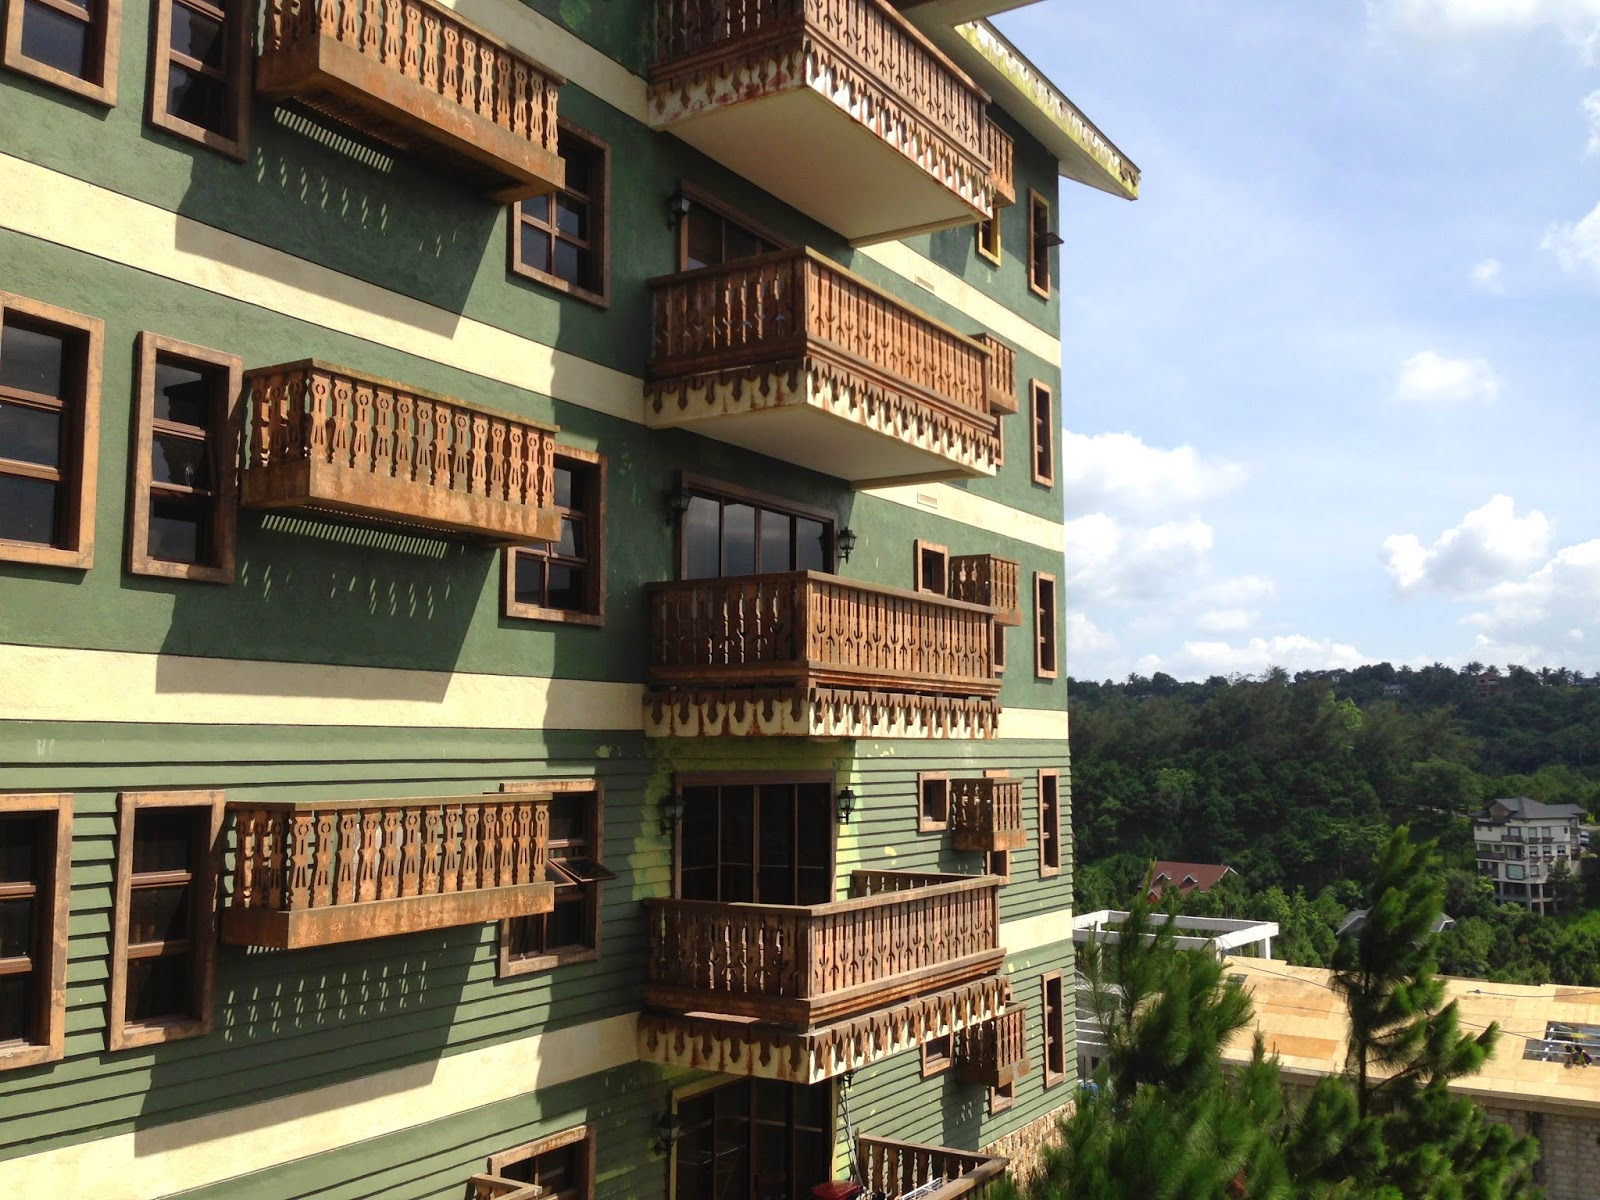 Thumbelina 39 s leaf where to stay in tagaytay crosswinds - Crosswinds tagaytay swimming pool ...